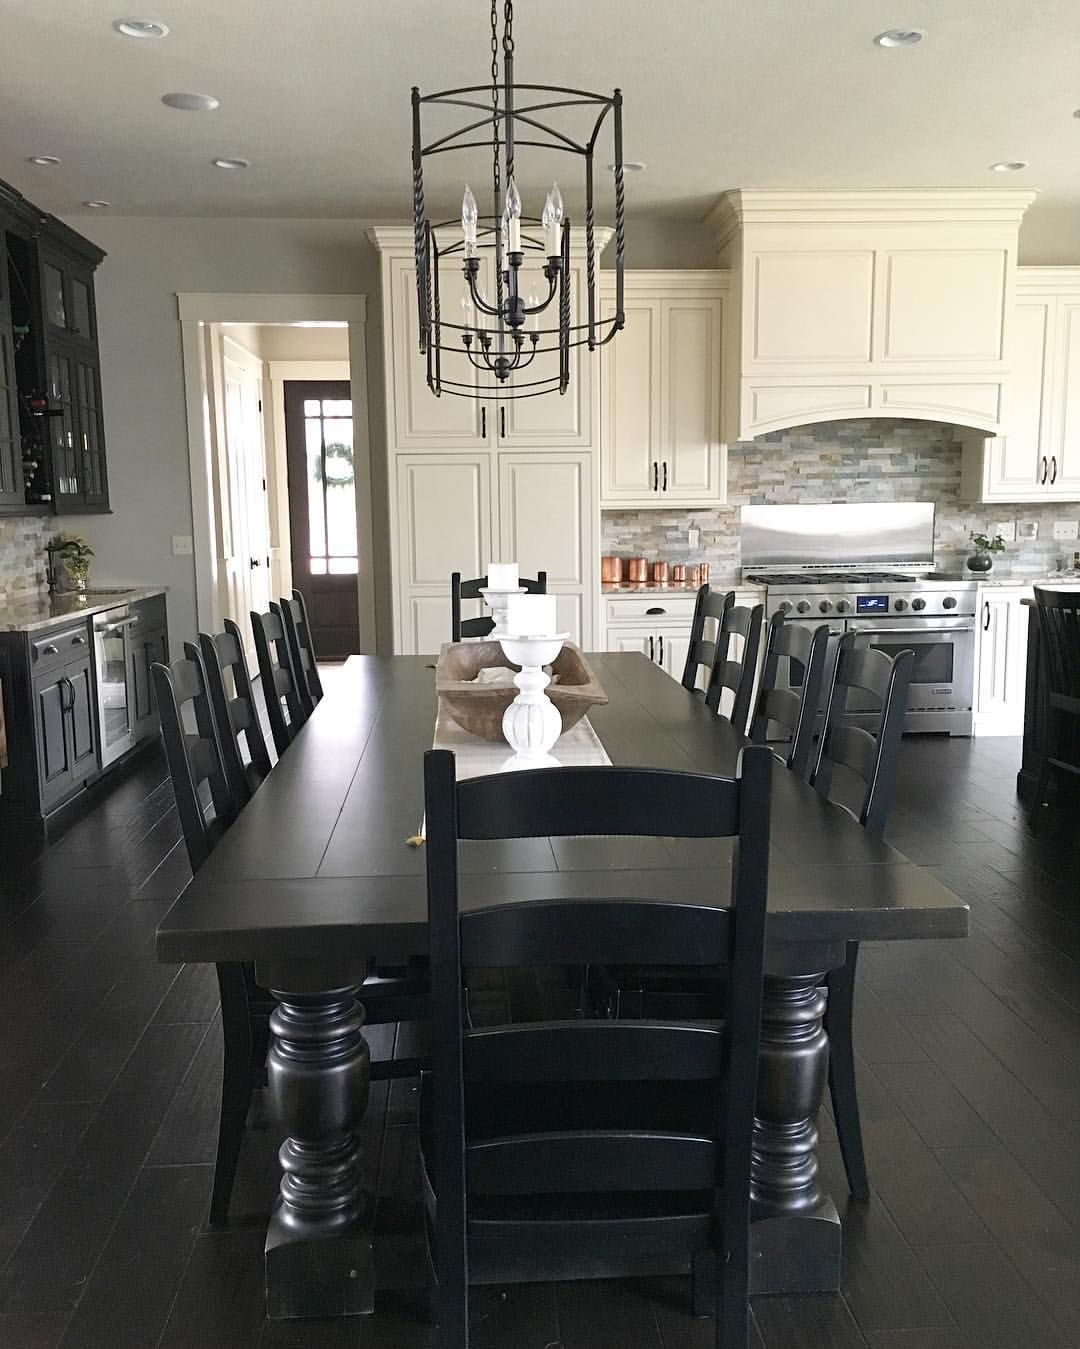 Black And White Modern Farmhouse Kitchen With Long Dining Table See This Instagram Photo By Farmhouseredefined